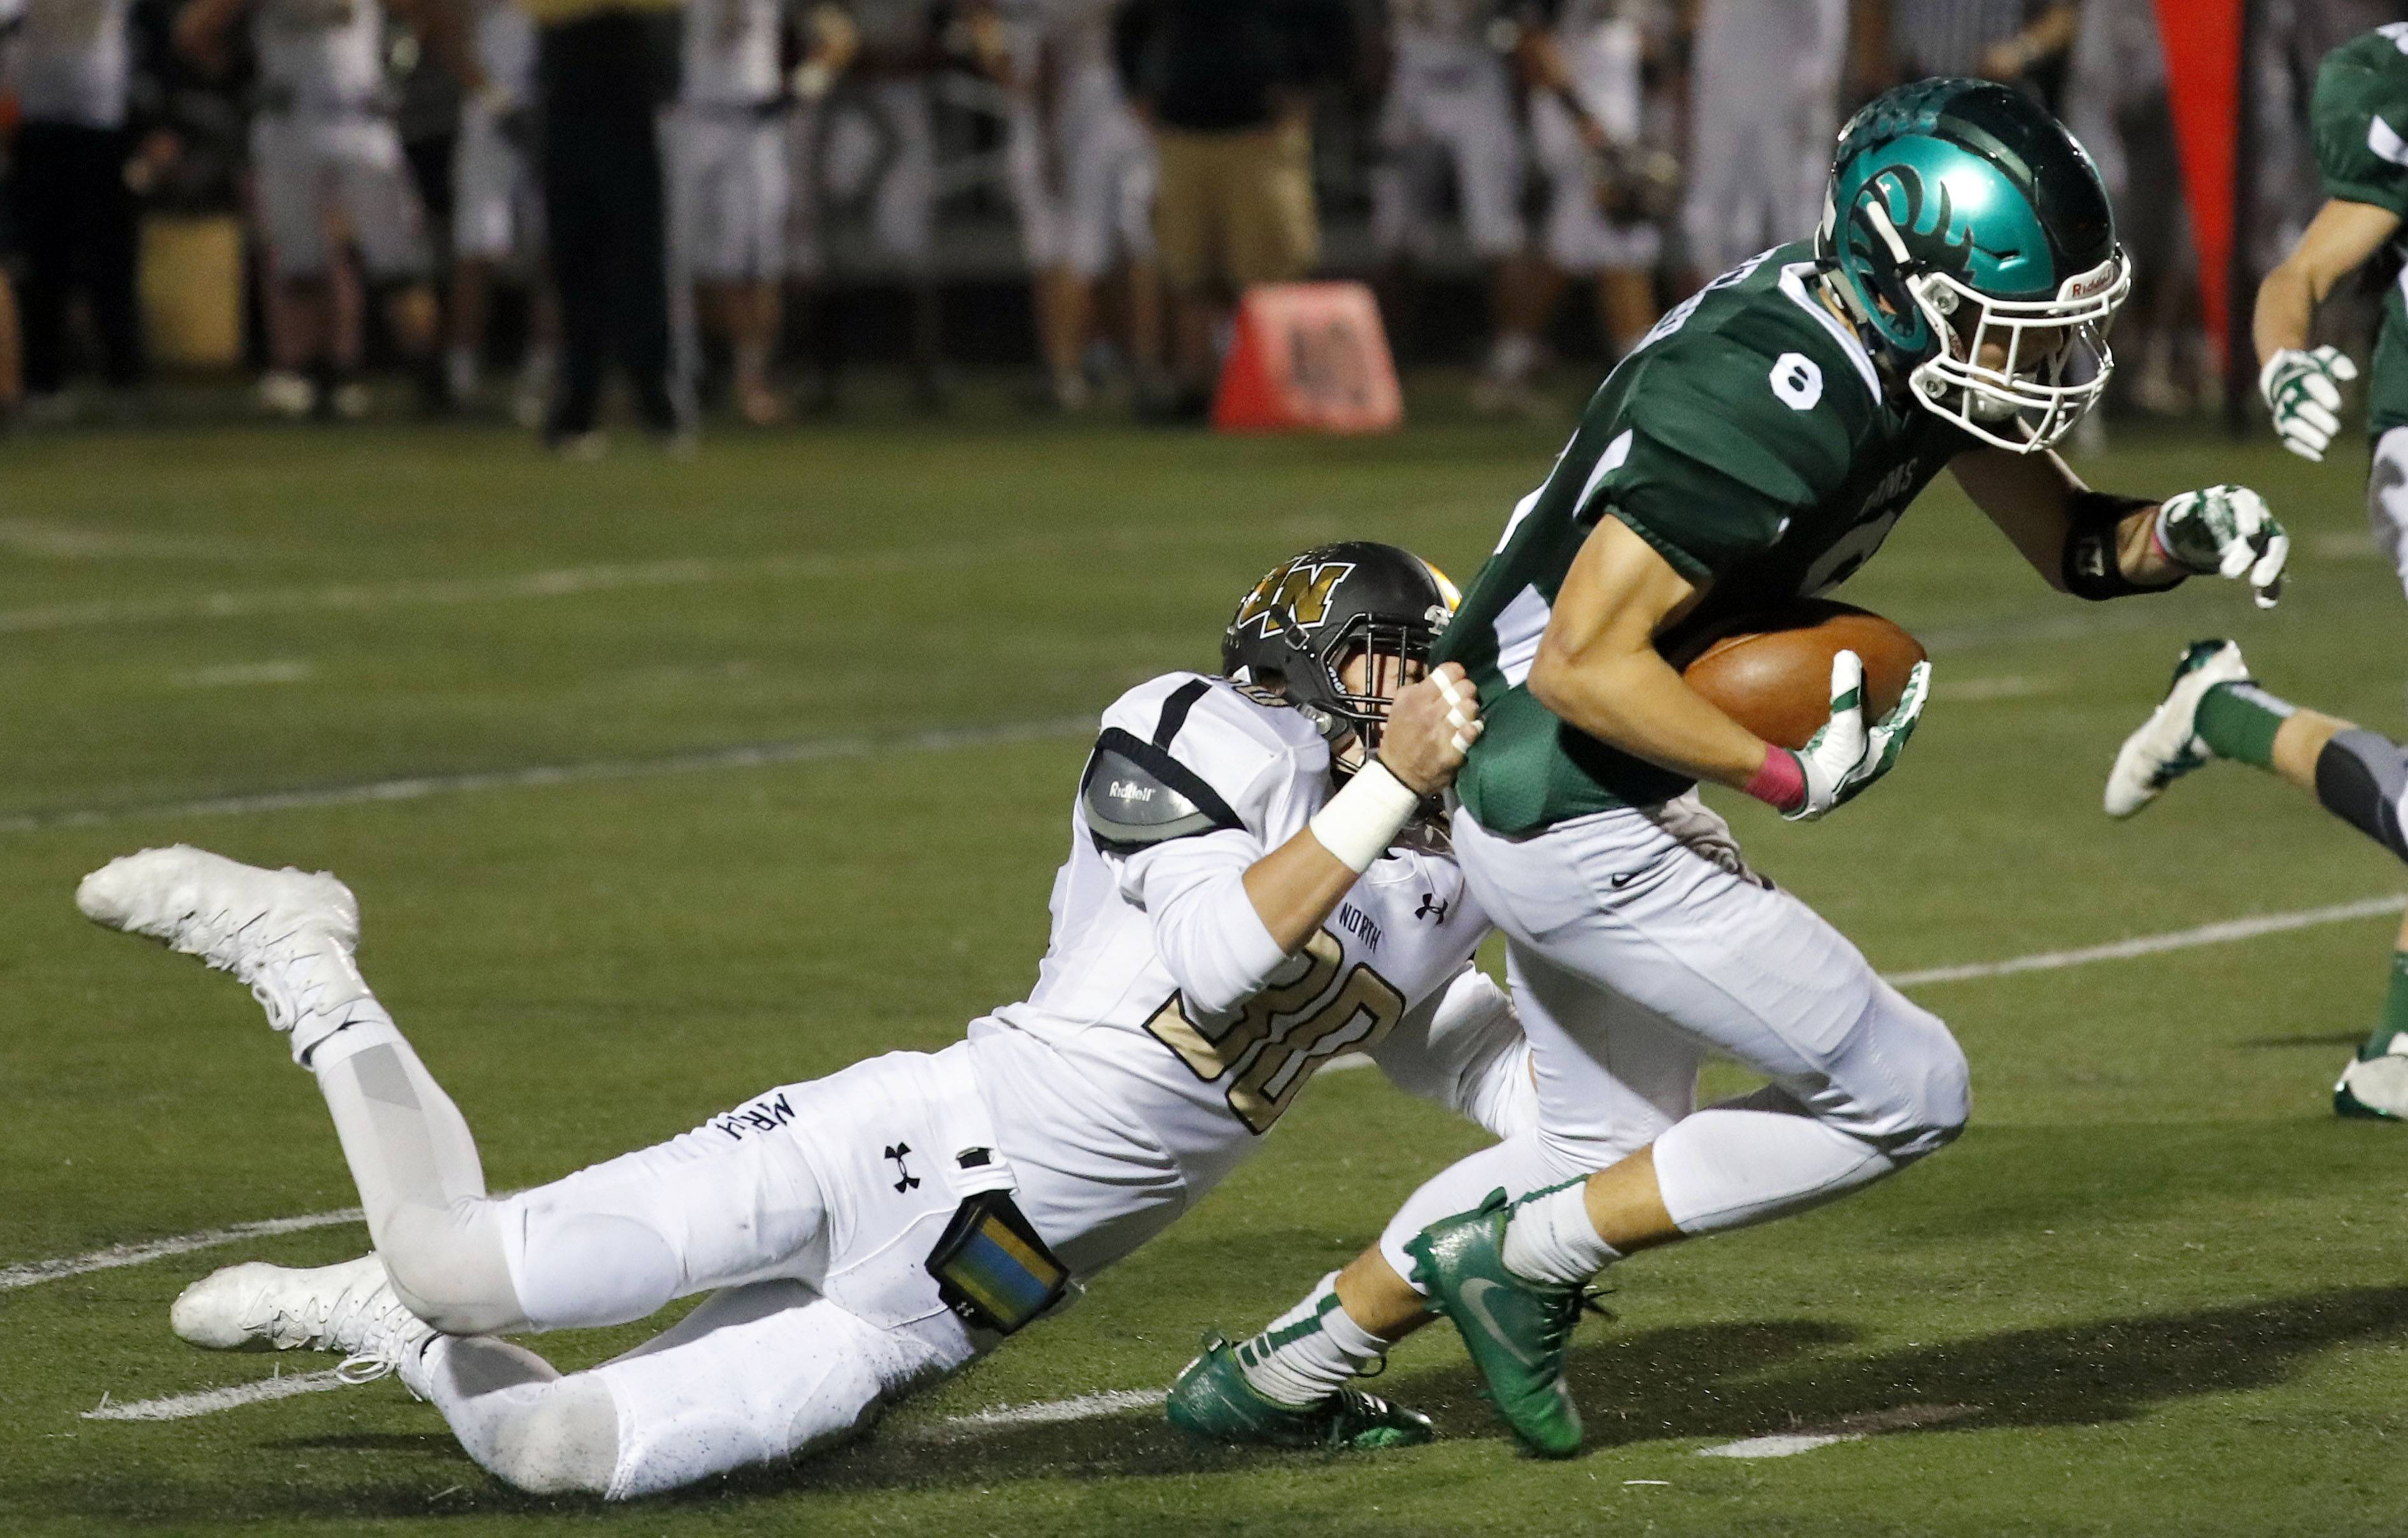 Grayslake Central's Peter Brewster, right, drags Grayslake North's Garrick McGregor after a catch Friday night at Grayslake Central.